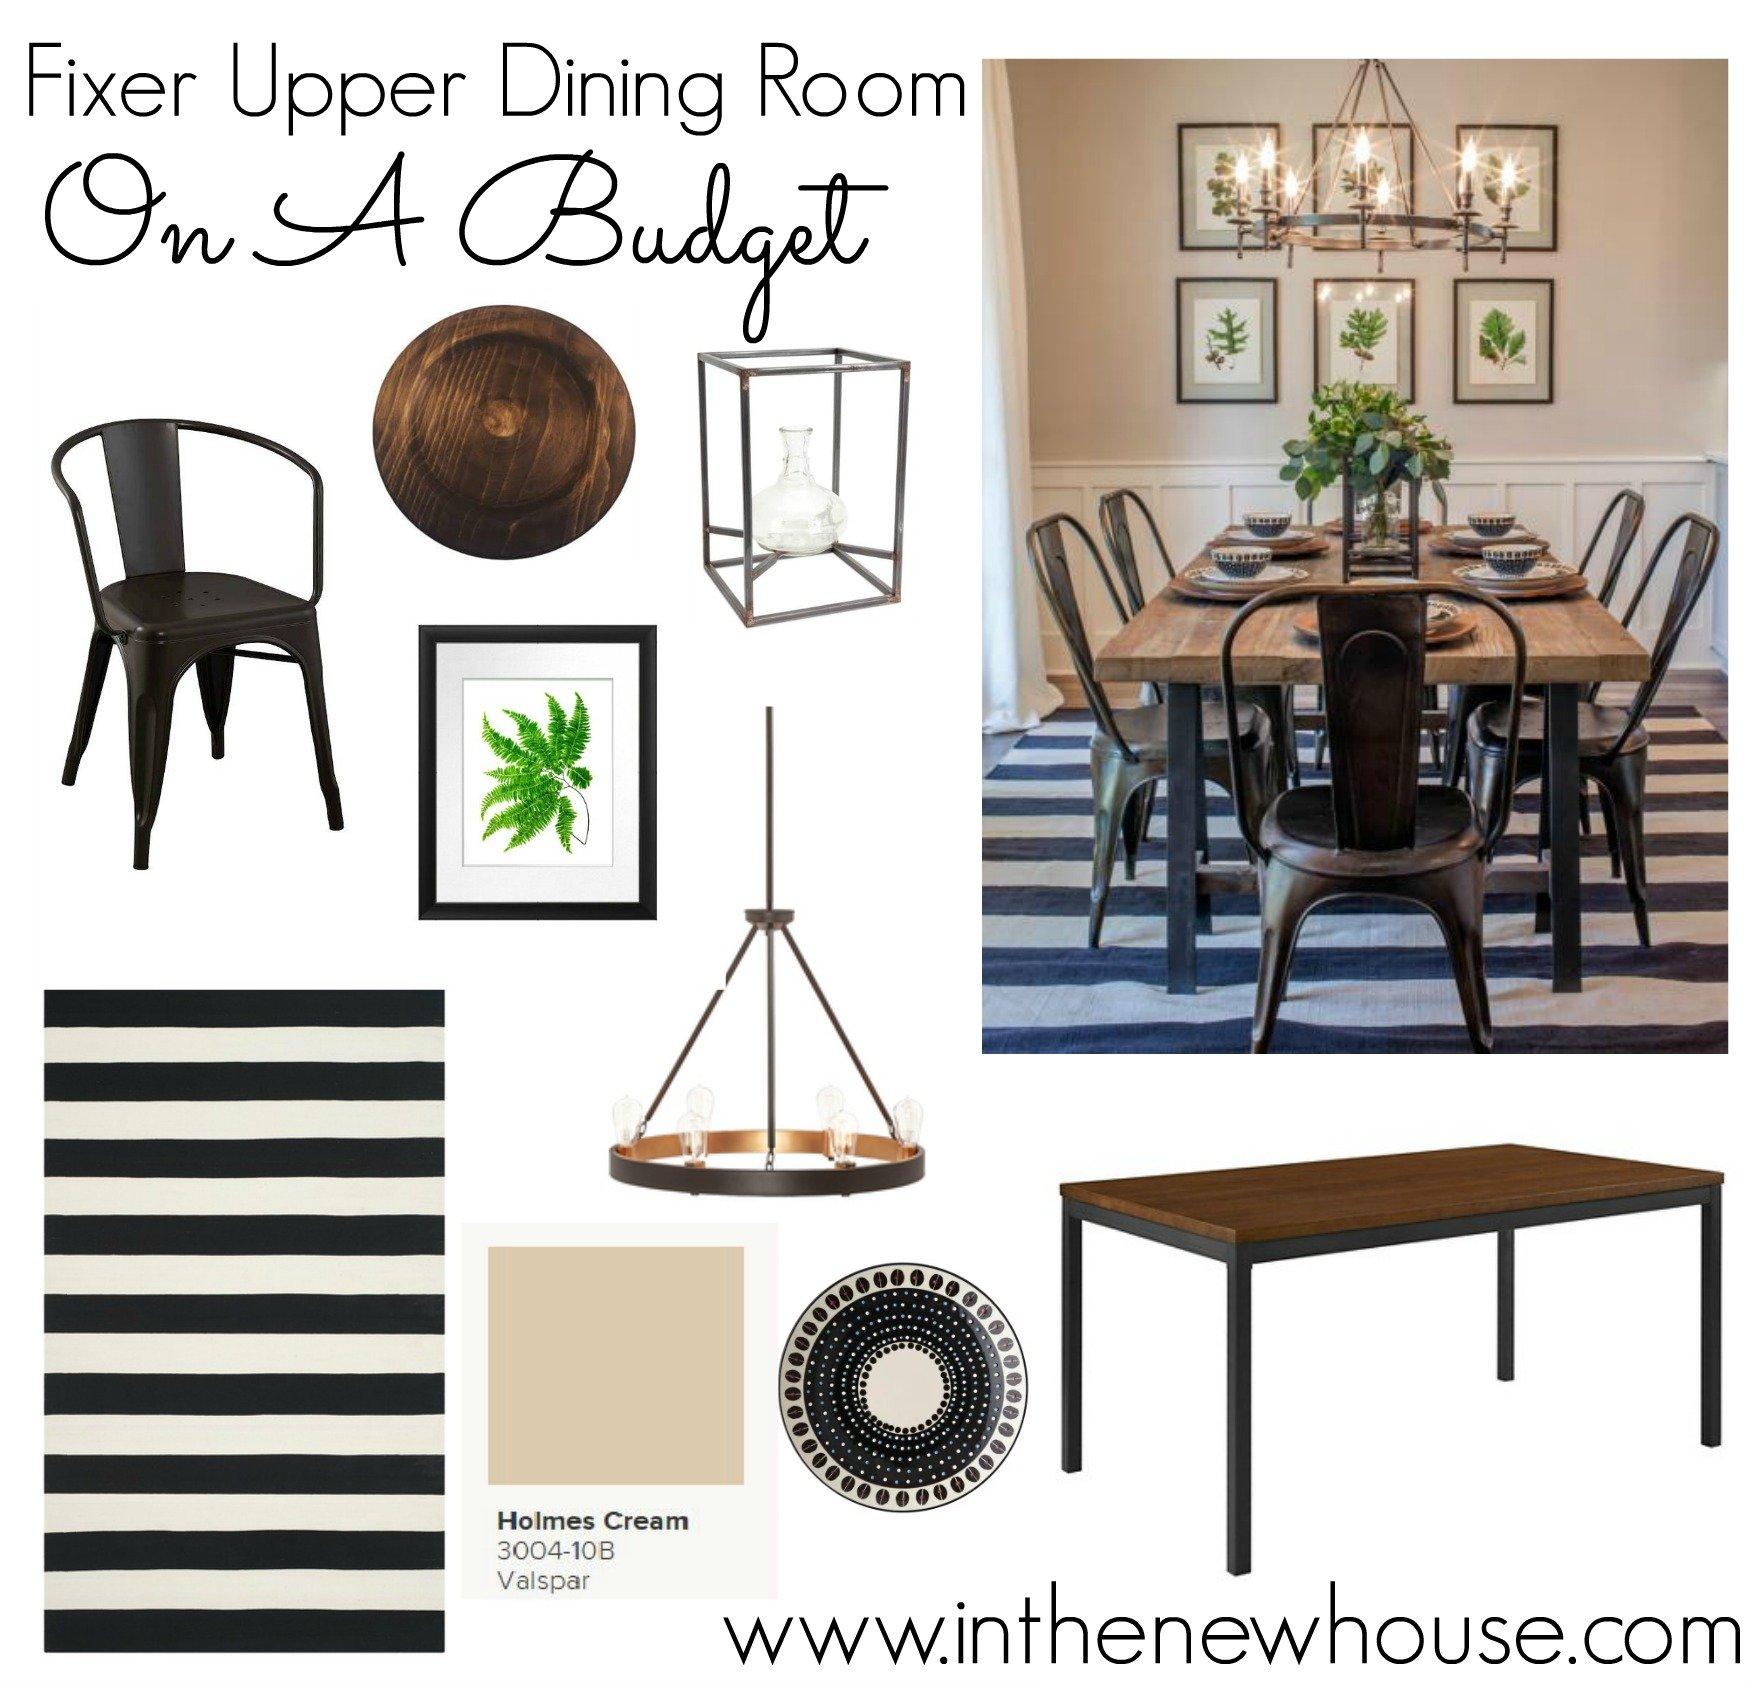 Get The Fixer Upper Look For Half Price